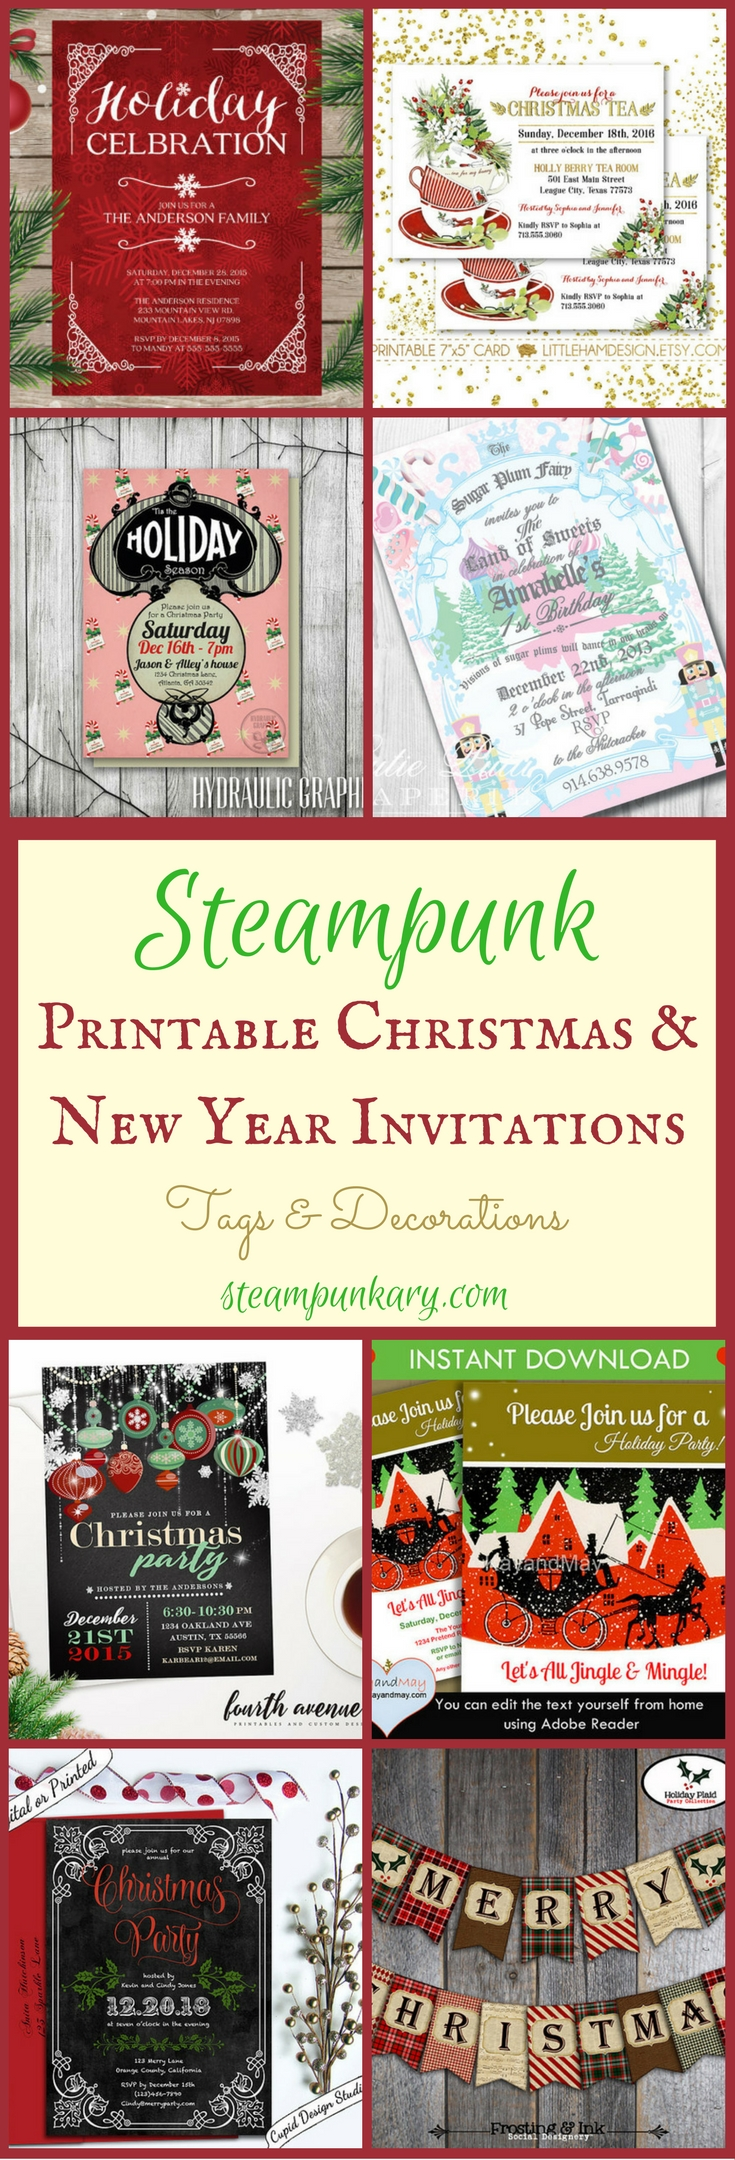 steampunk printable christmas new year invitations tags decorations longjpg